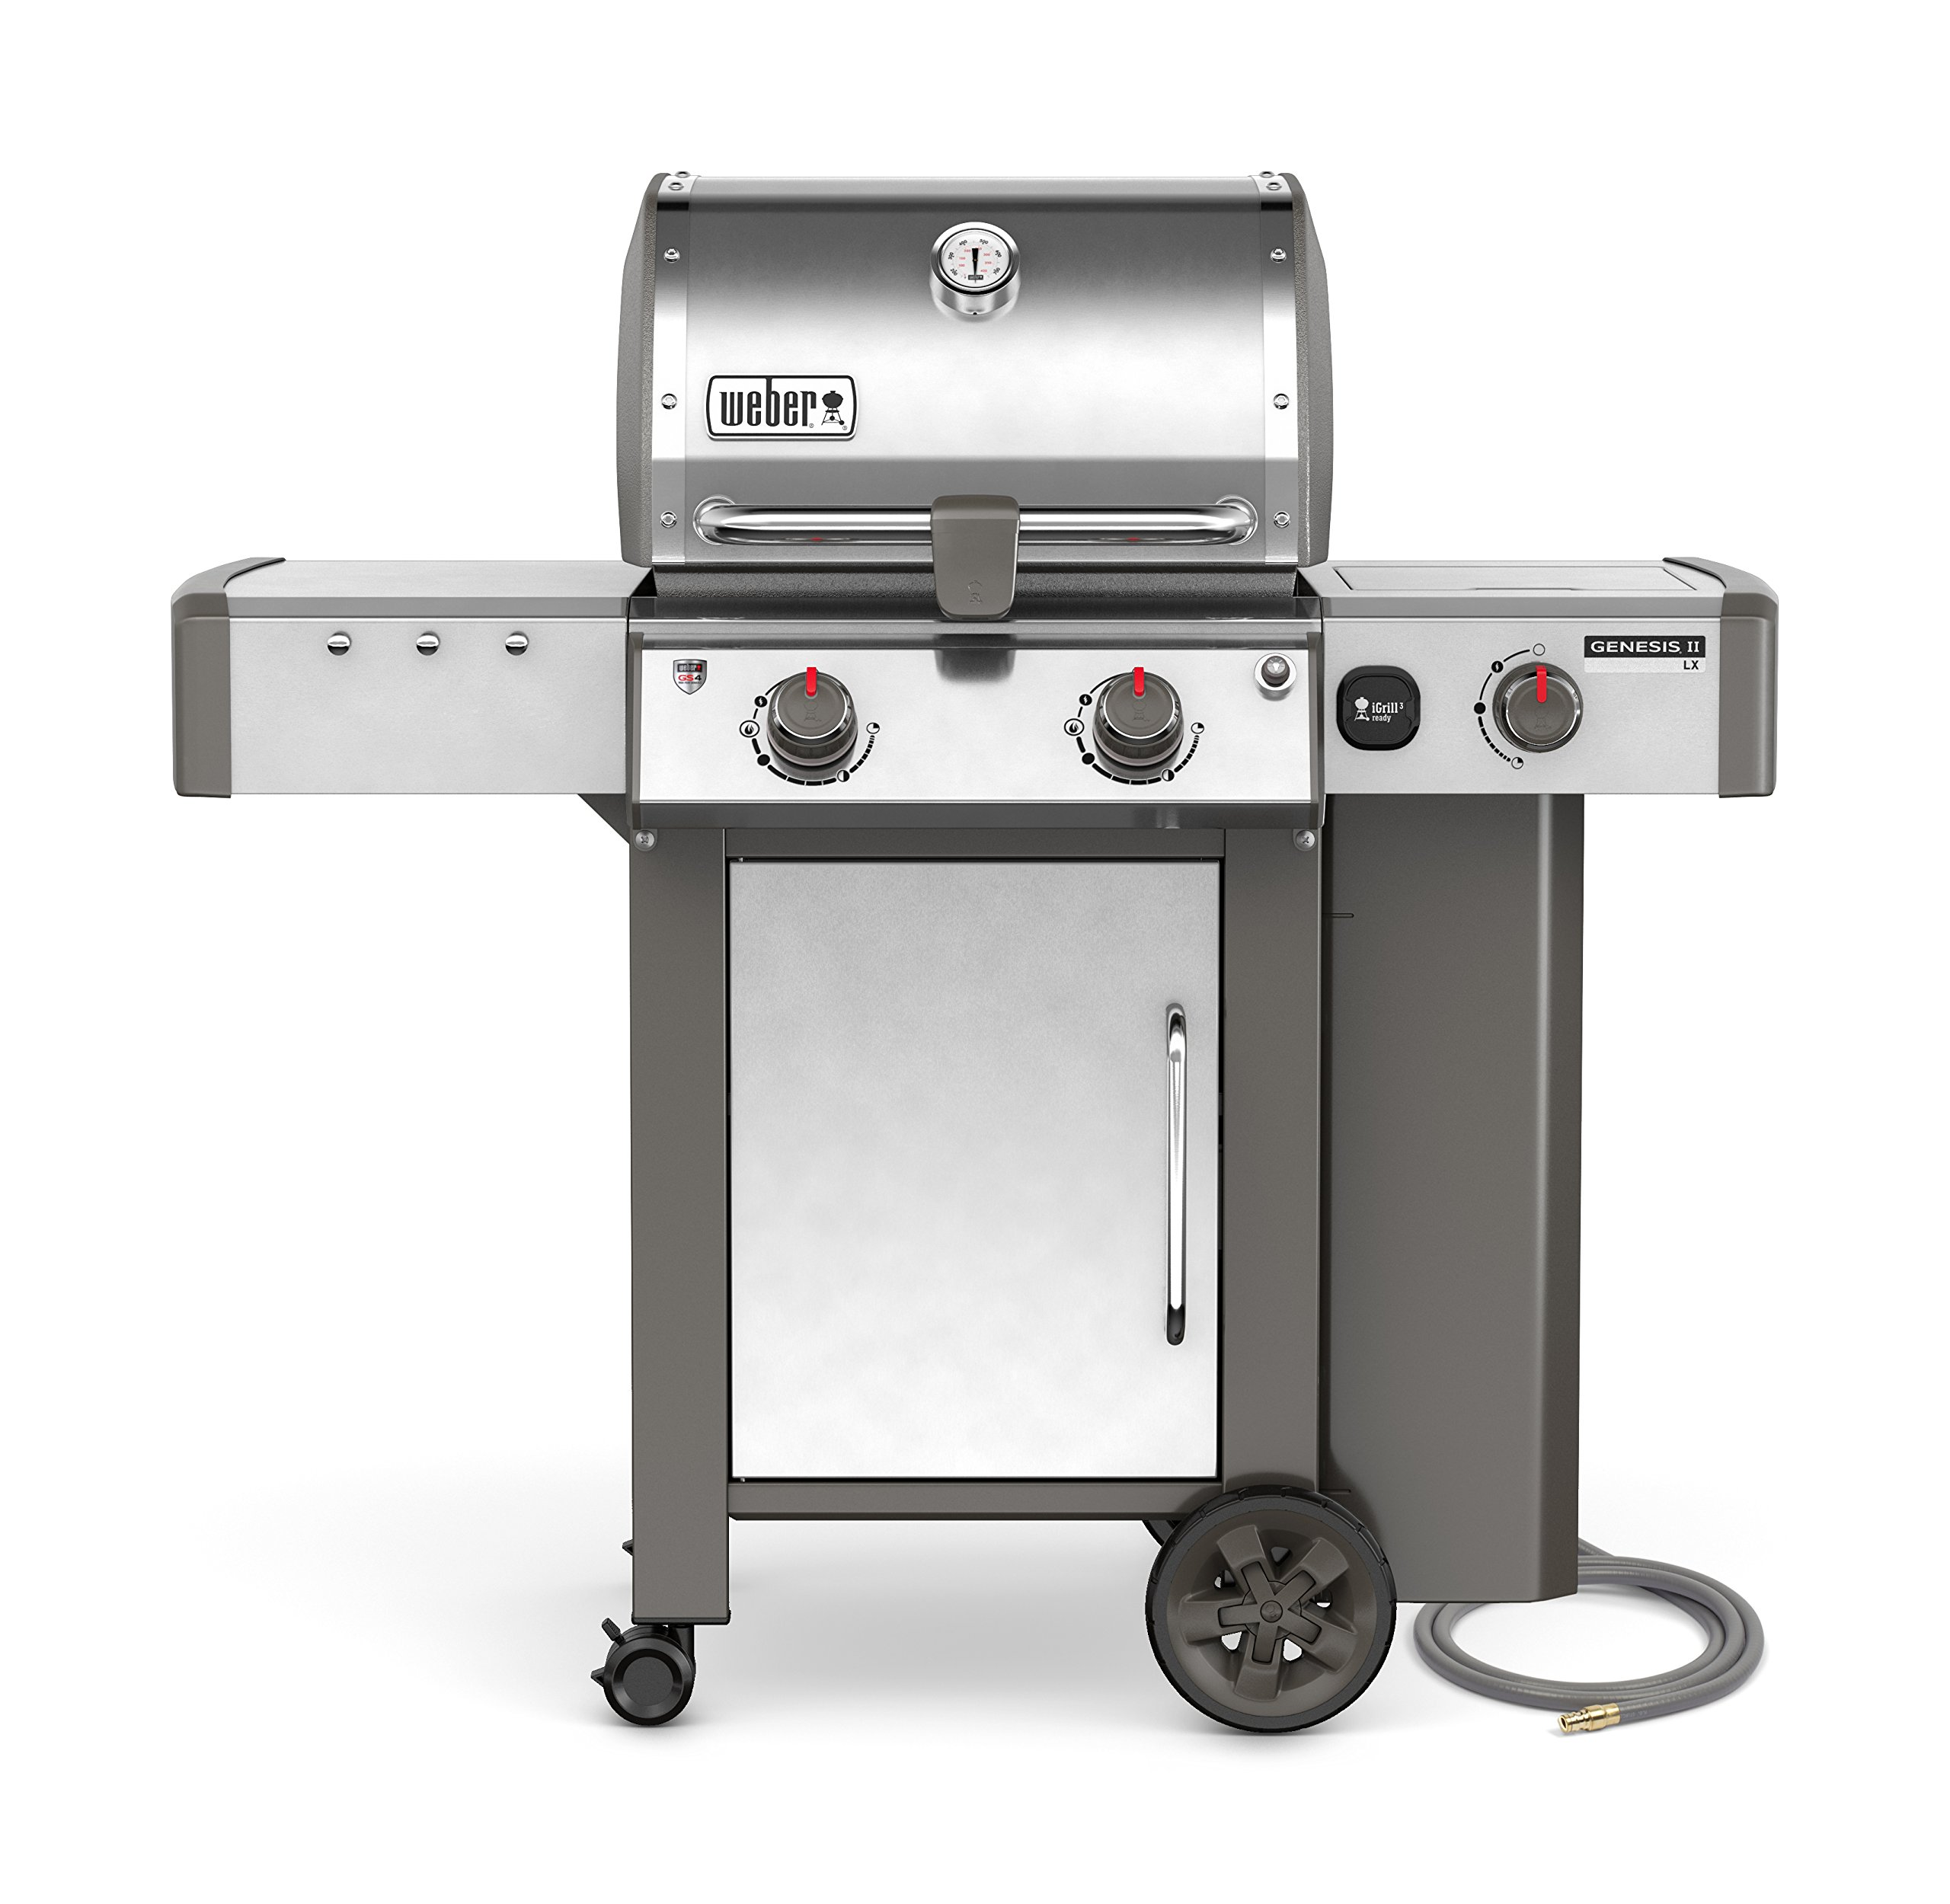 Weber 65004001 Genesis II LX S-240 Natural Gas Grill, Stainless Steel, Two-Burner,